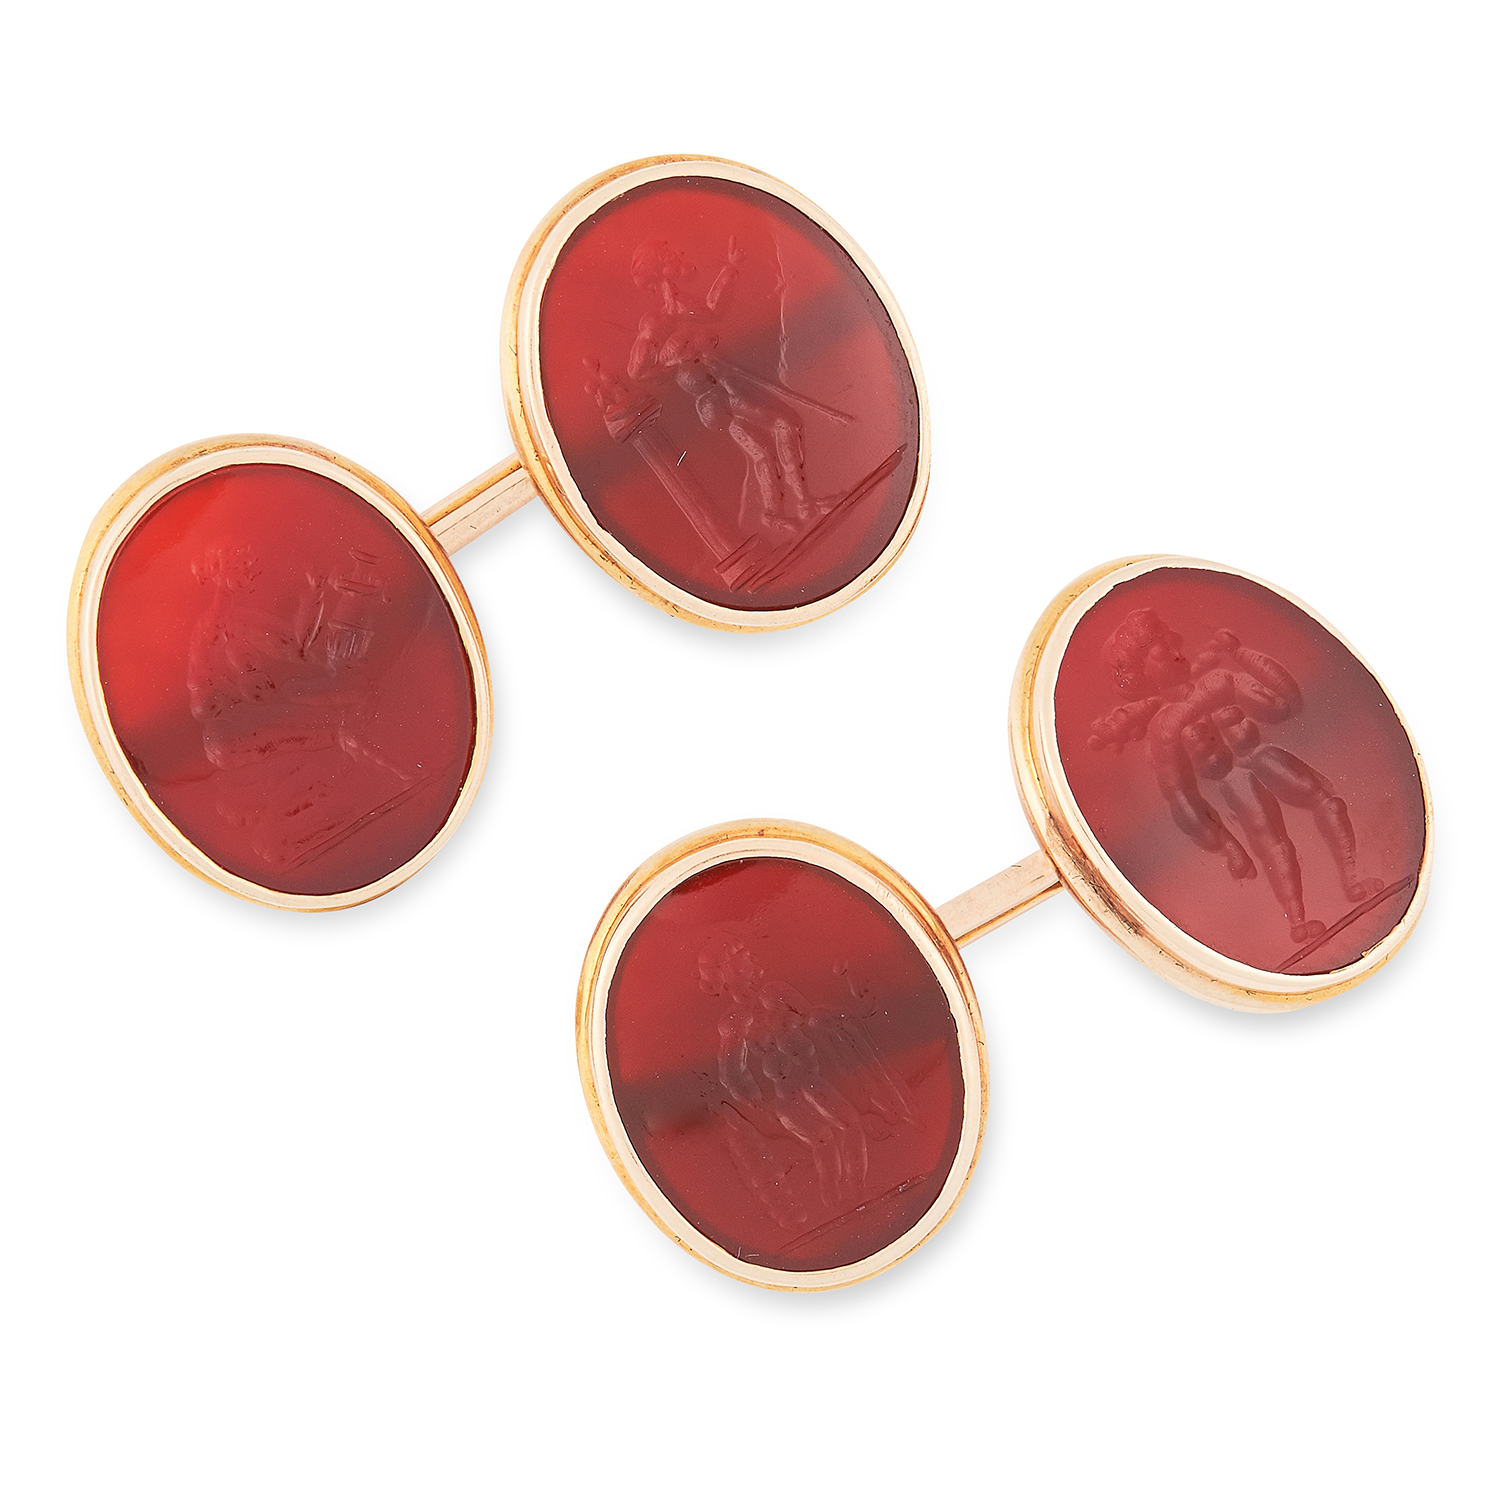 A PAIR OF ANTIQUE CARVED INTAGLIO SEAL CUFFLINKS set with oval carnelian panels reverse carved to